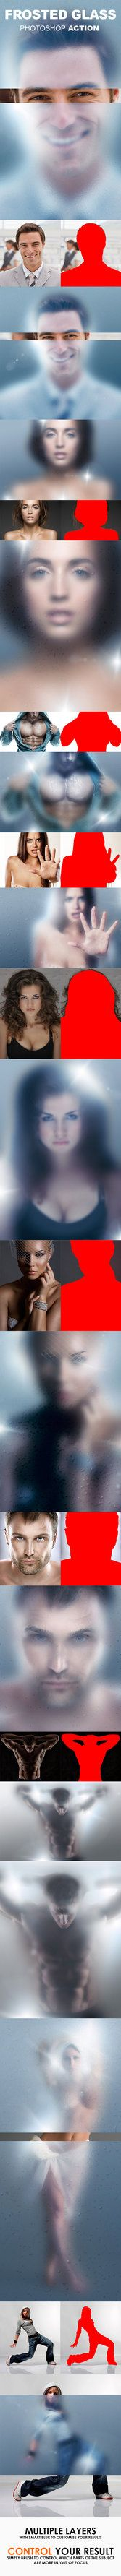 DOWNLOAD:goo.gl/g9npT1 Create a frosted glass or a blurry mirror effect with this action. The action works on an area you define by brushing (the subject). It creates multiple layers with smart fil...